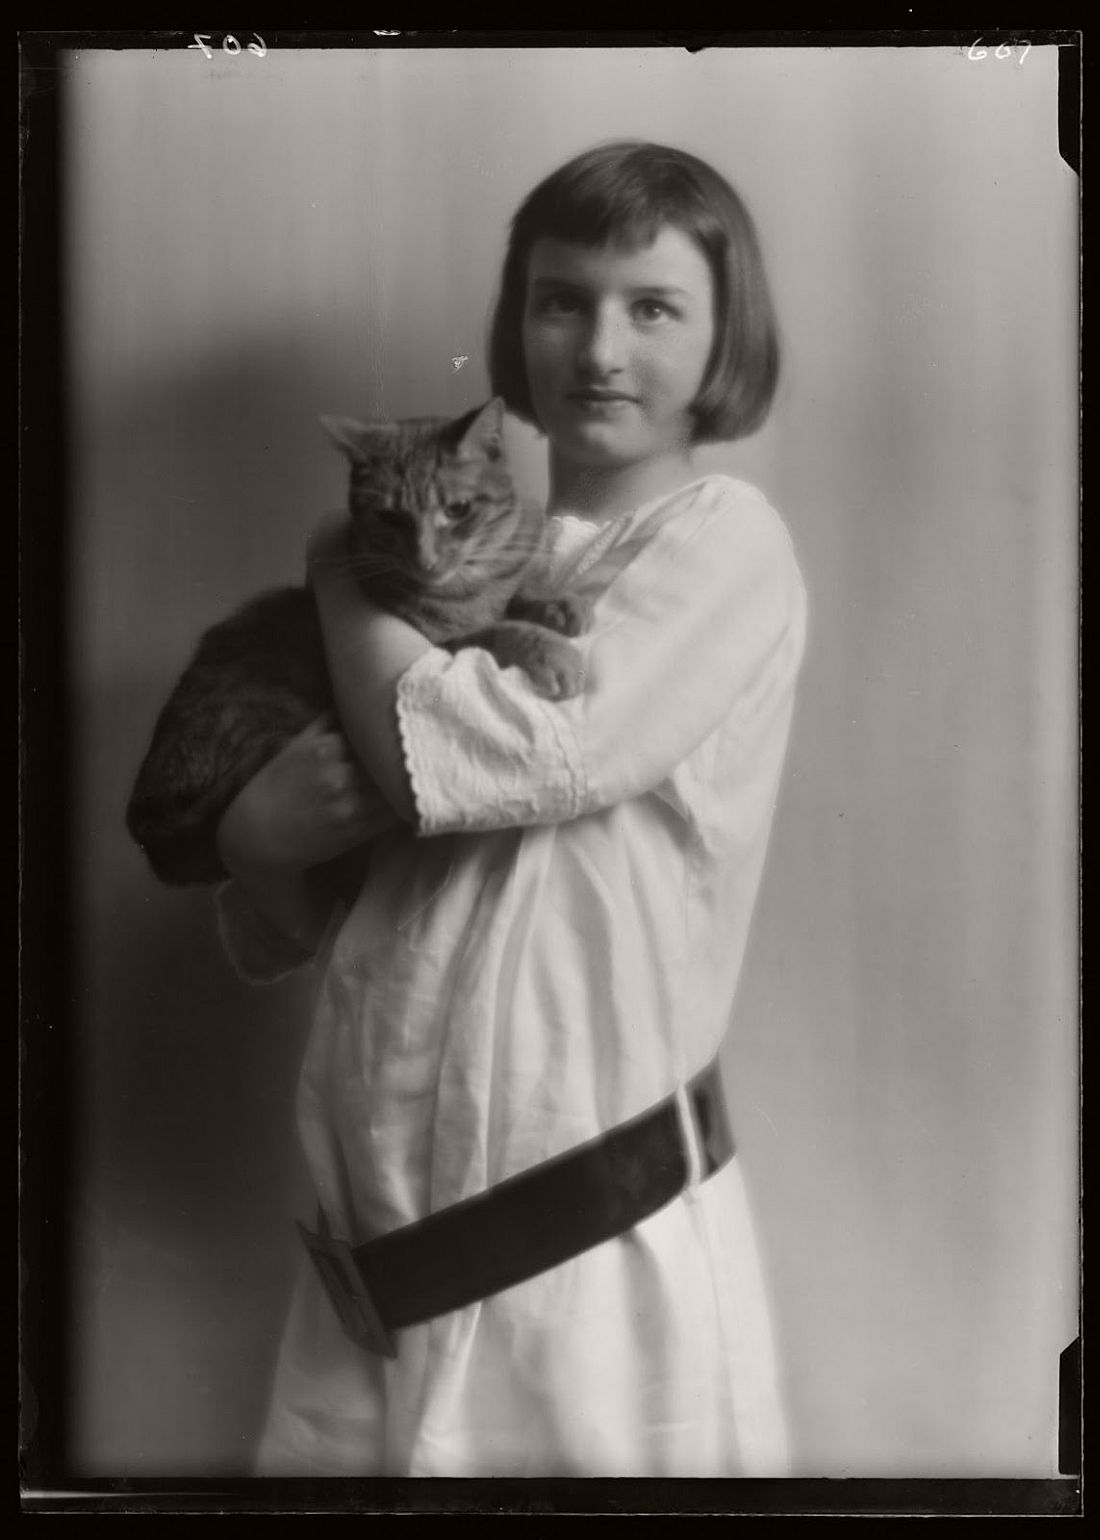 arnold-genthe-1910s-vintage-studio-portraits-of-girls-with-cat-18